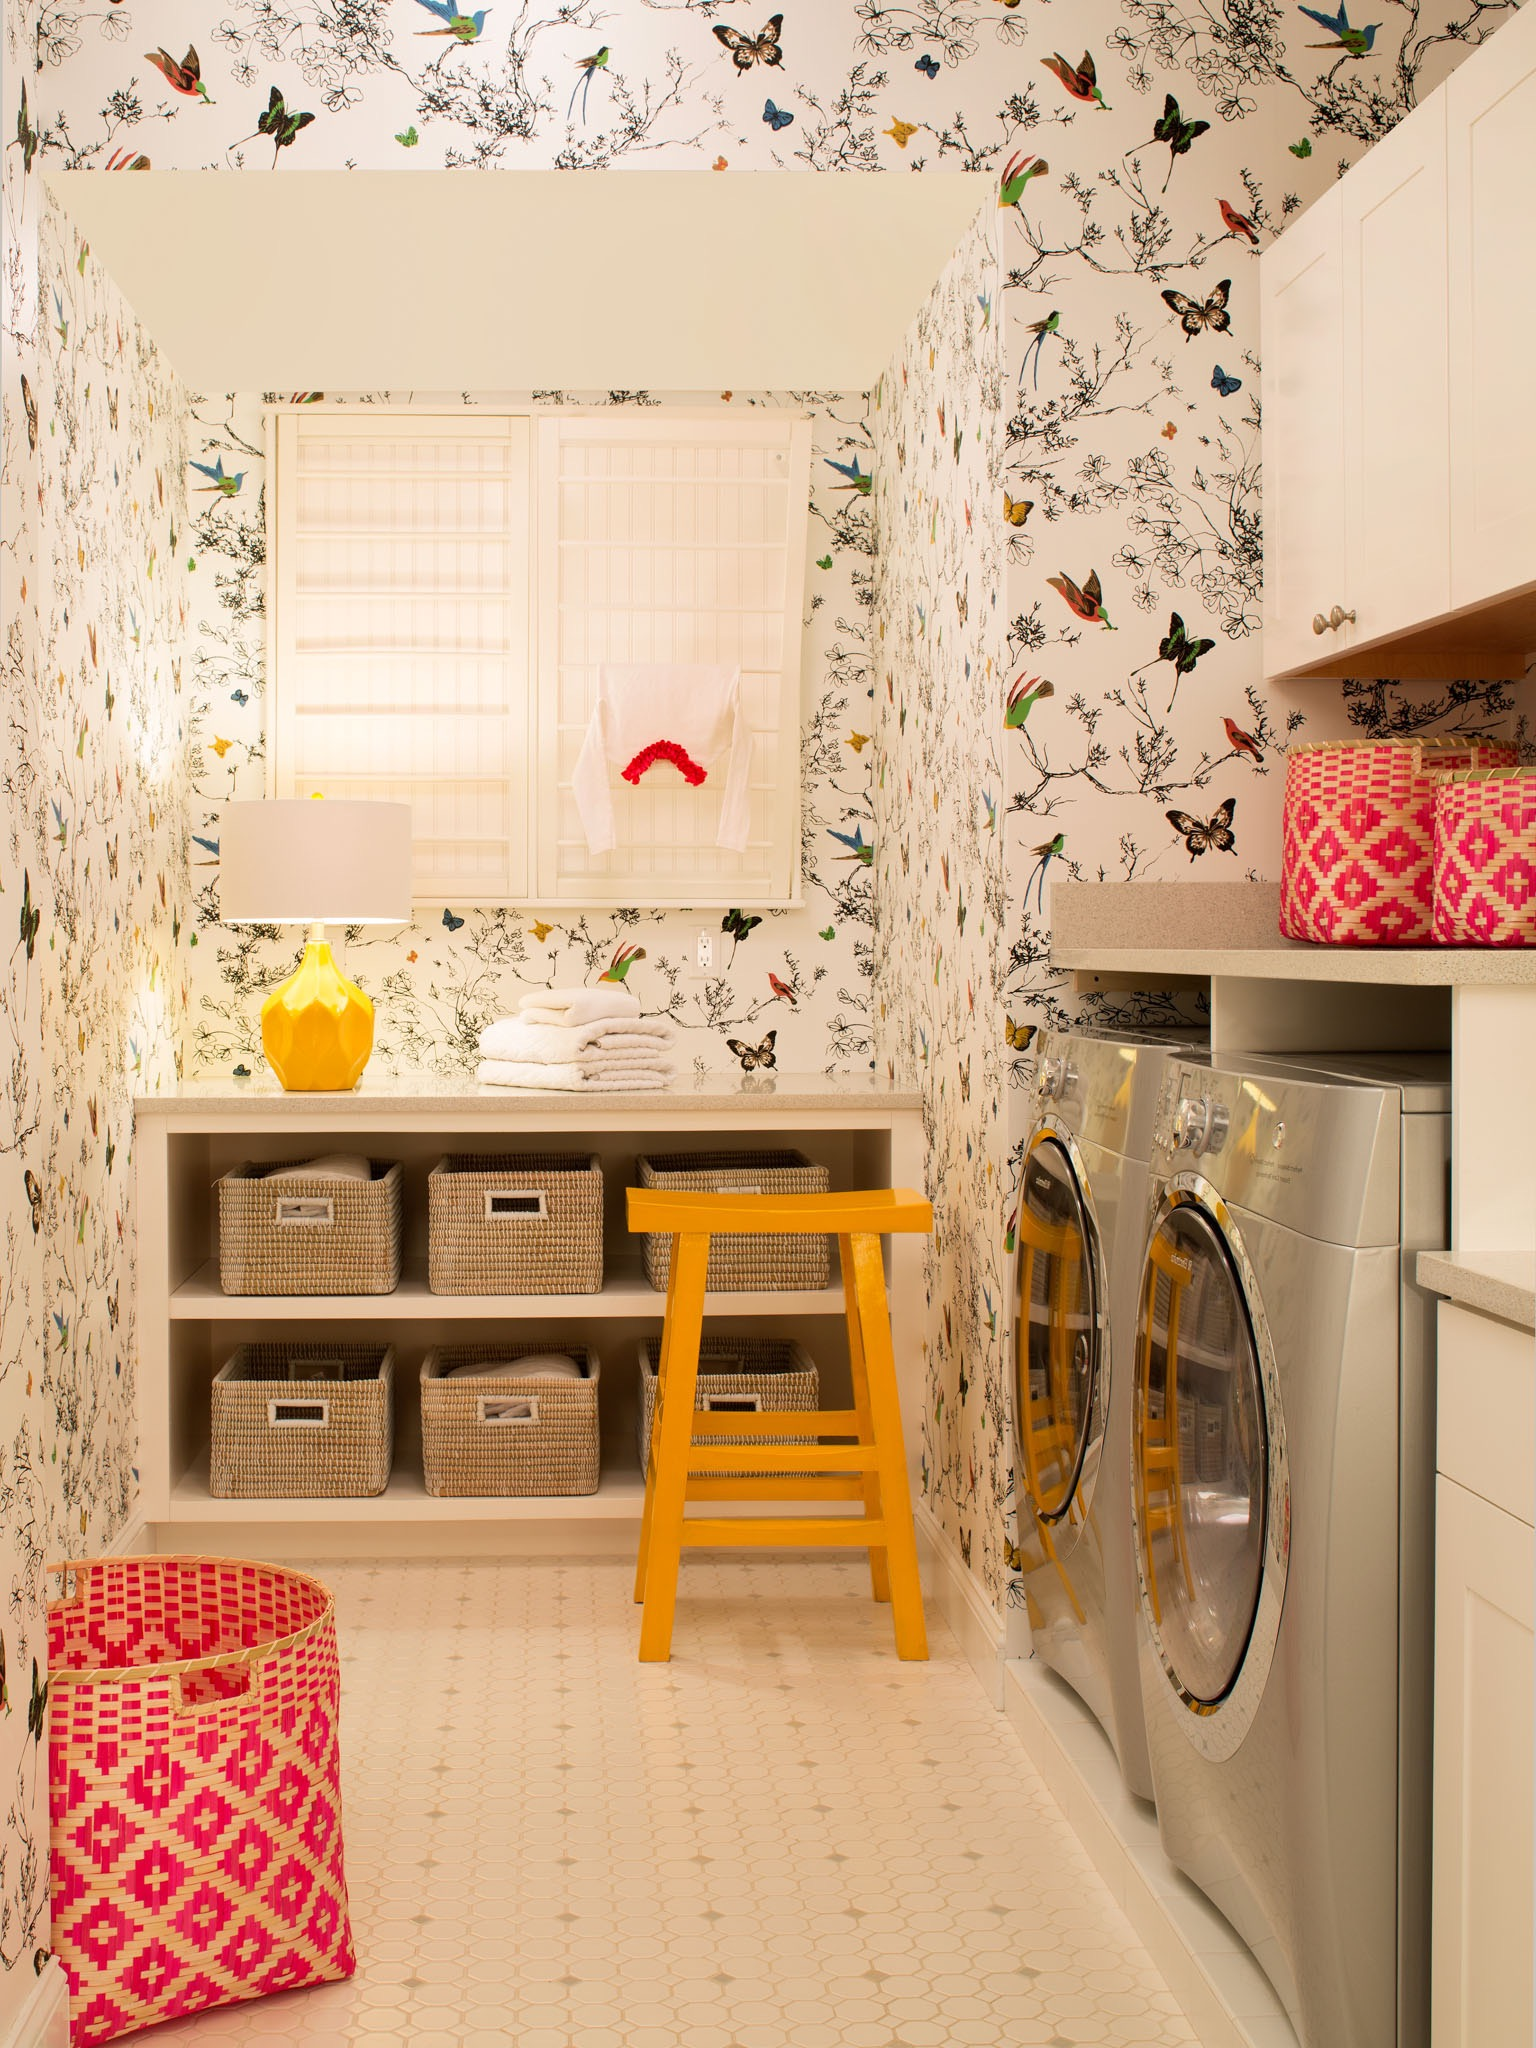 Laundry Room With Whimsical Butterfly Wallpaper (Image 13 of 26)